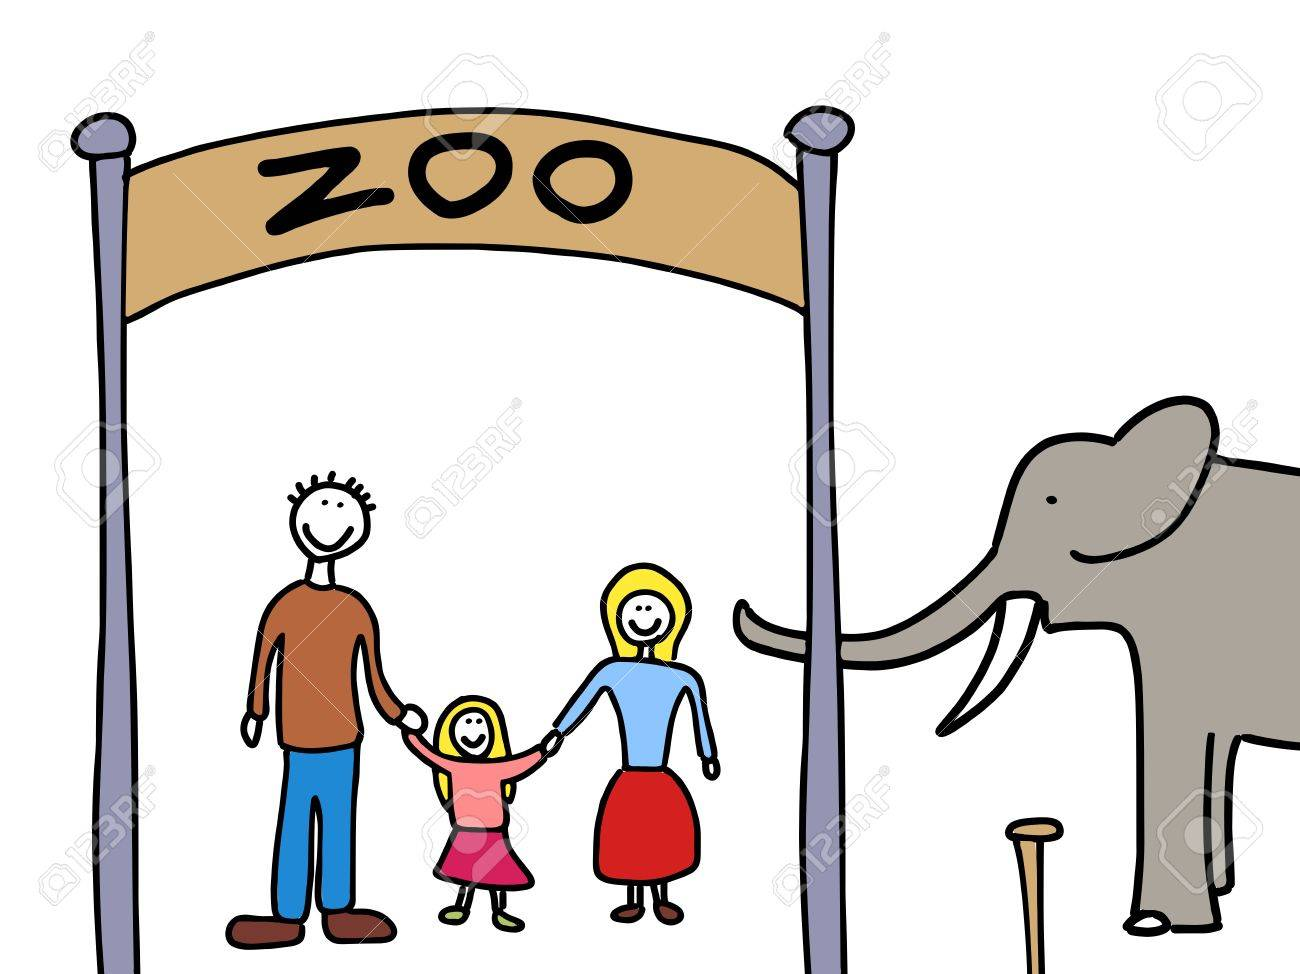 Happy family: mother, father and child. Weekend visit to the zoo. Child-like illustration. Stock Vector - 10990640